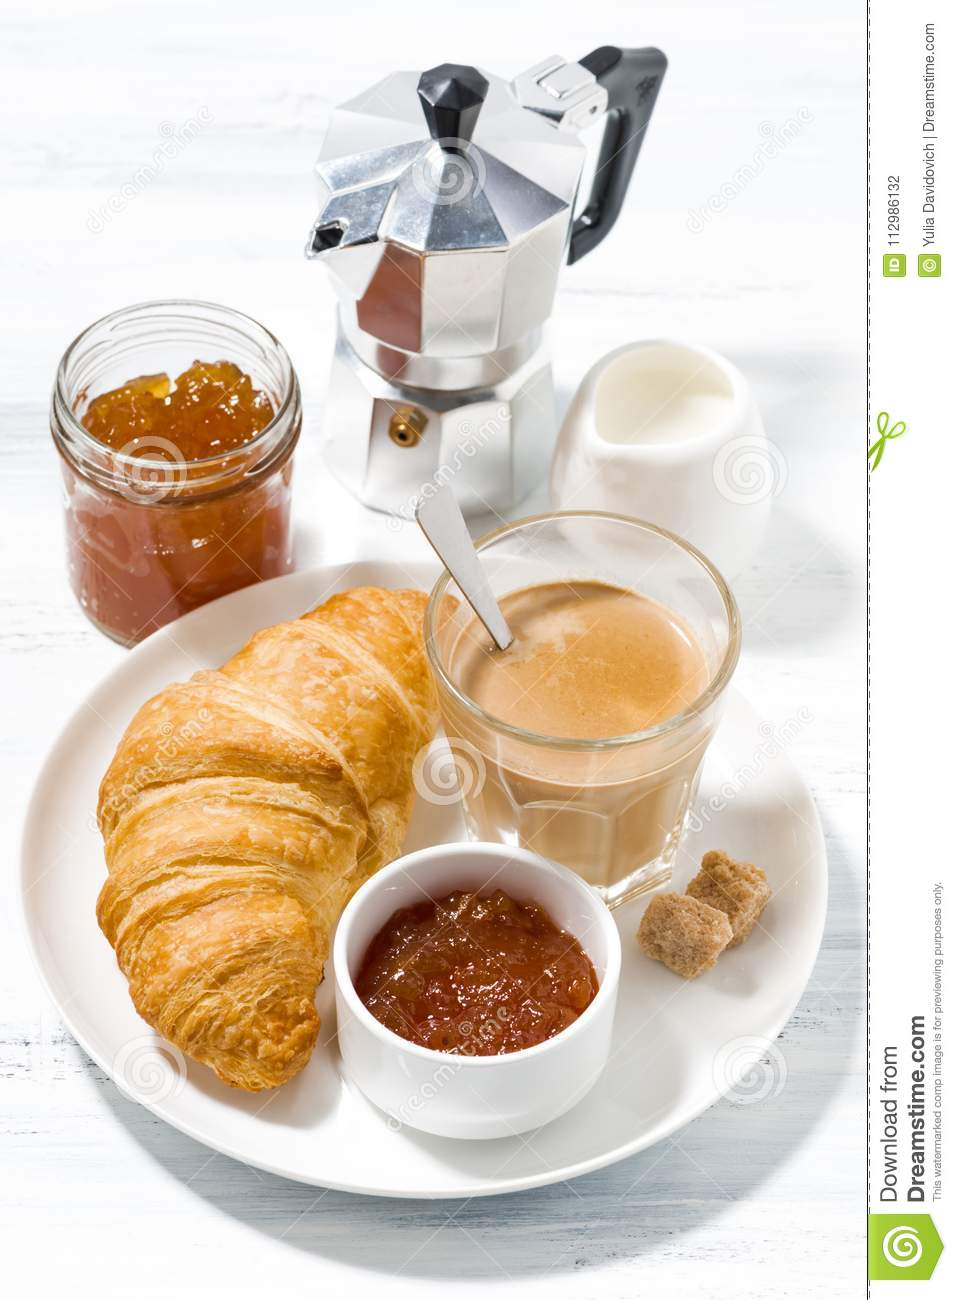 Coffee with milk and croissants with jam for breakfast, vertical